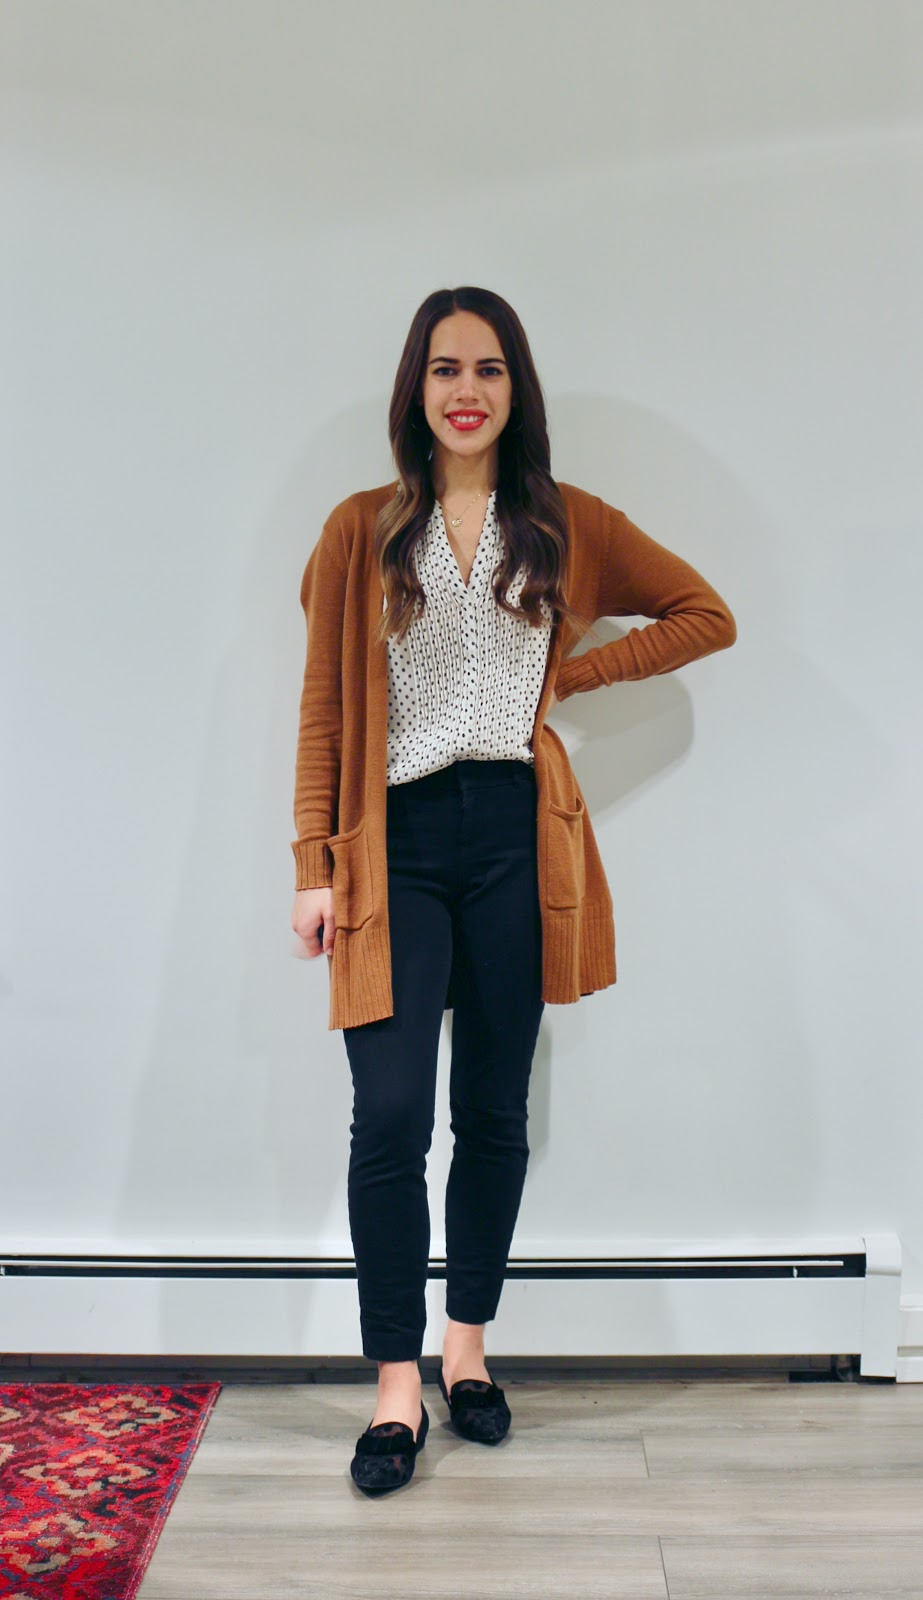 Jules in Flats - Polka Dots & Camel (Business Casual Winter Workwear on a Budget)